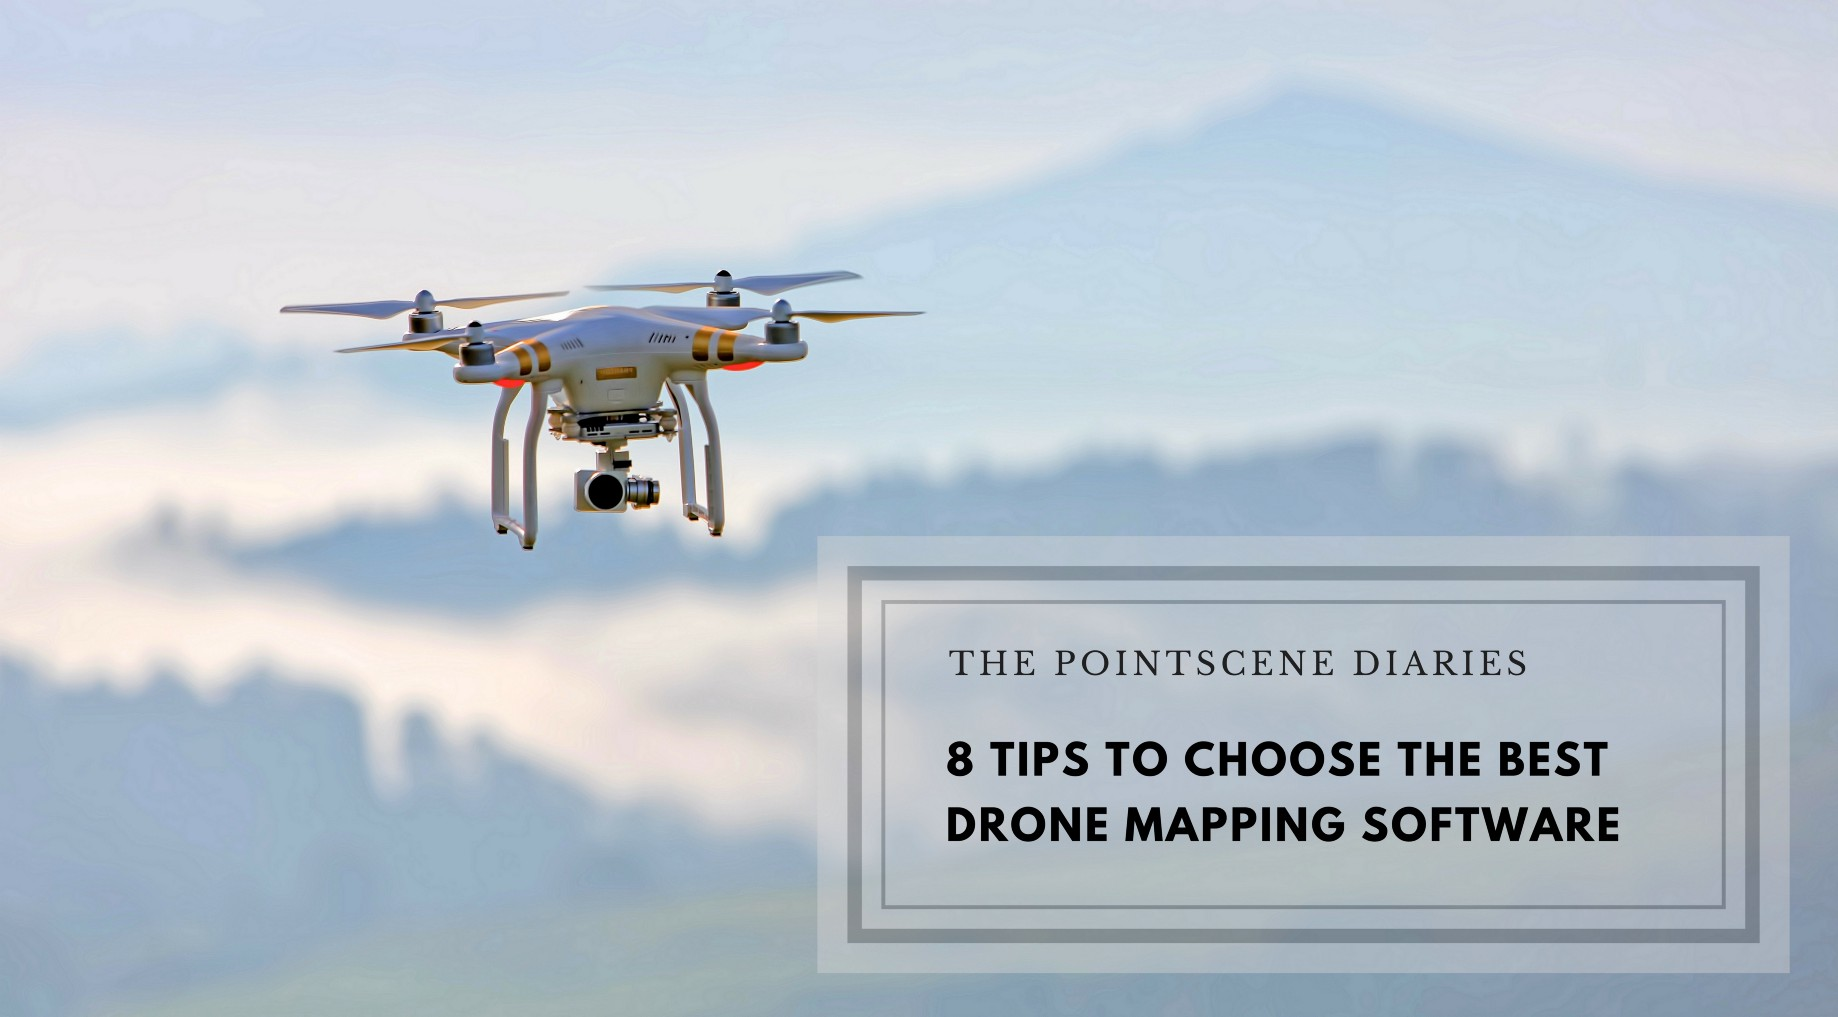 How to choose the best drone mapping software - The Pointscene